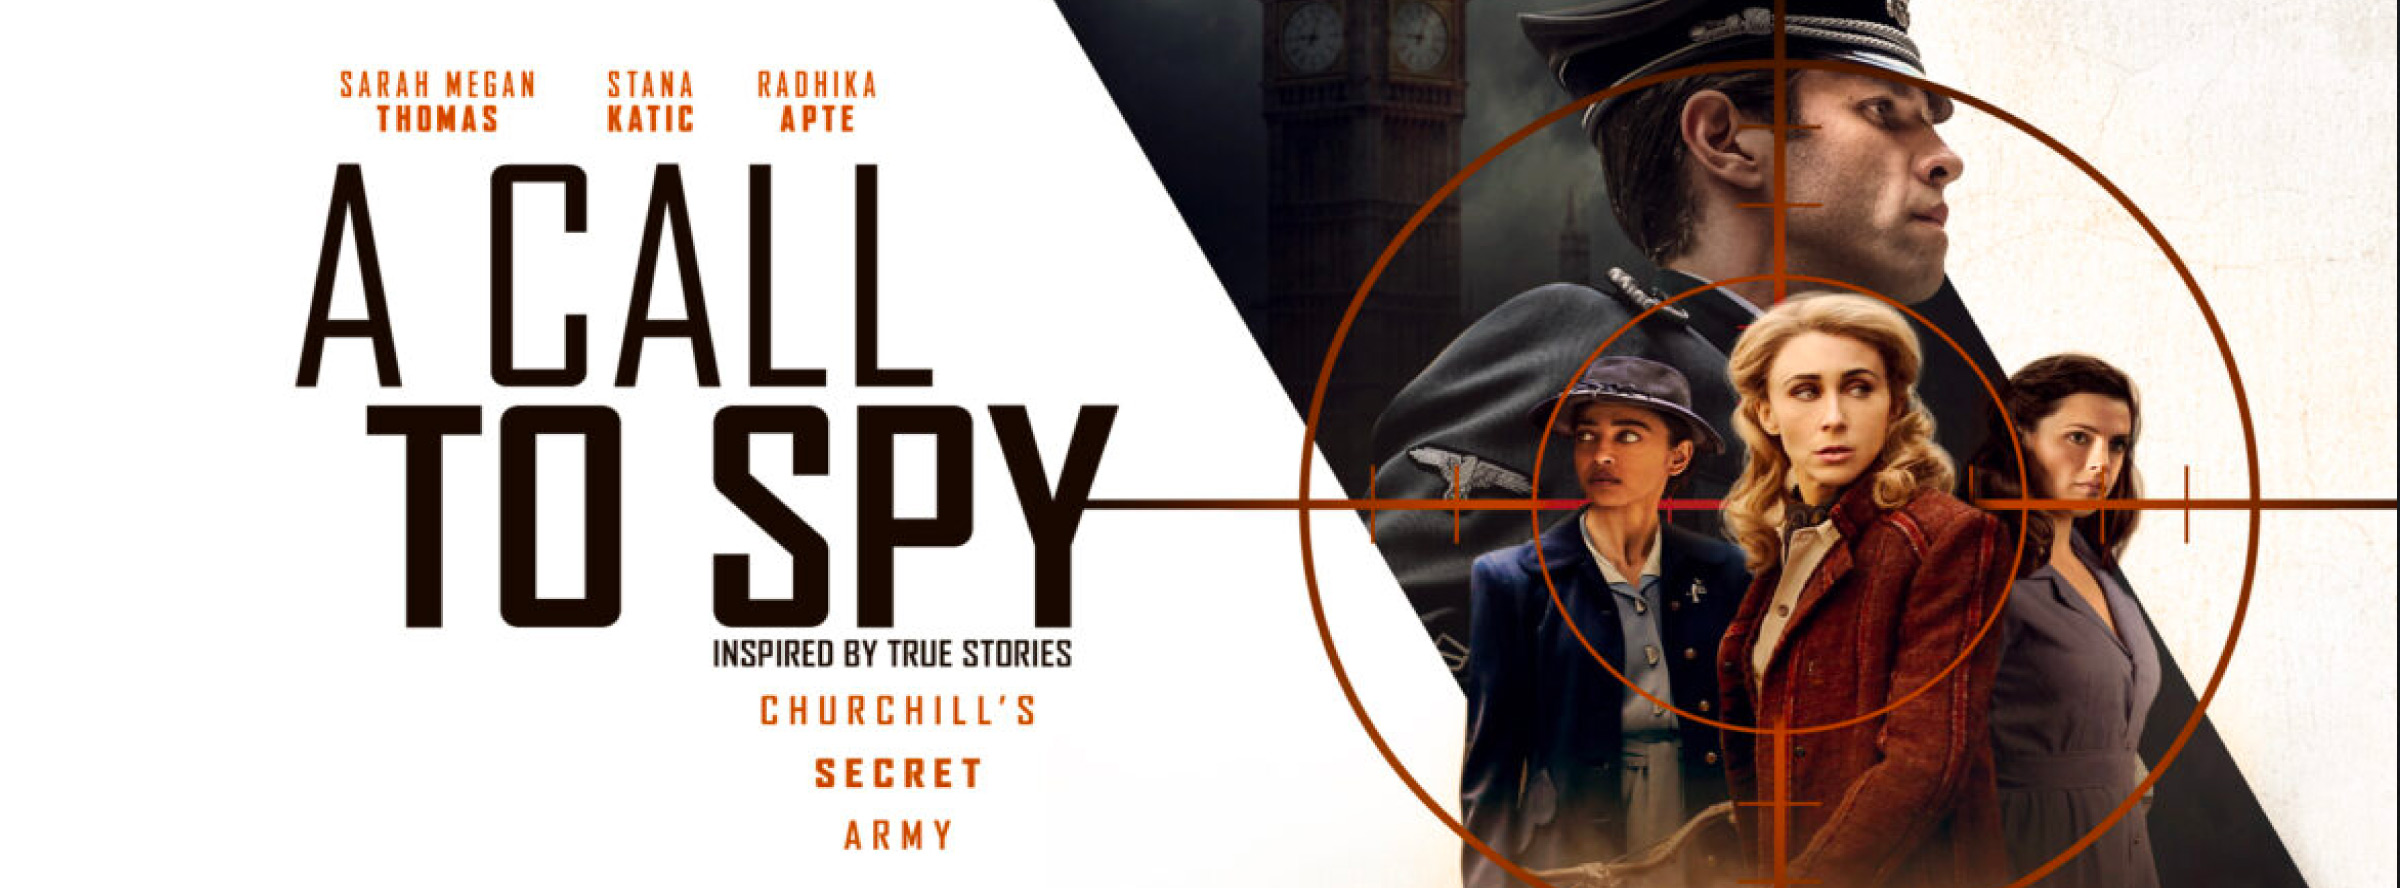 Slider Image for A Call to Spy